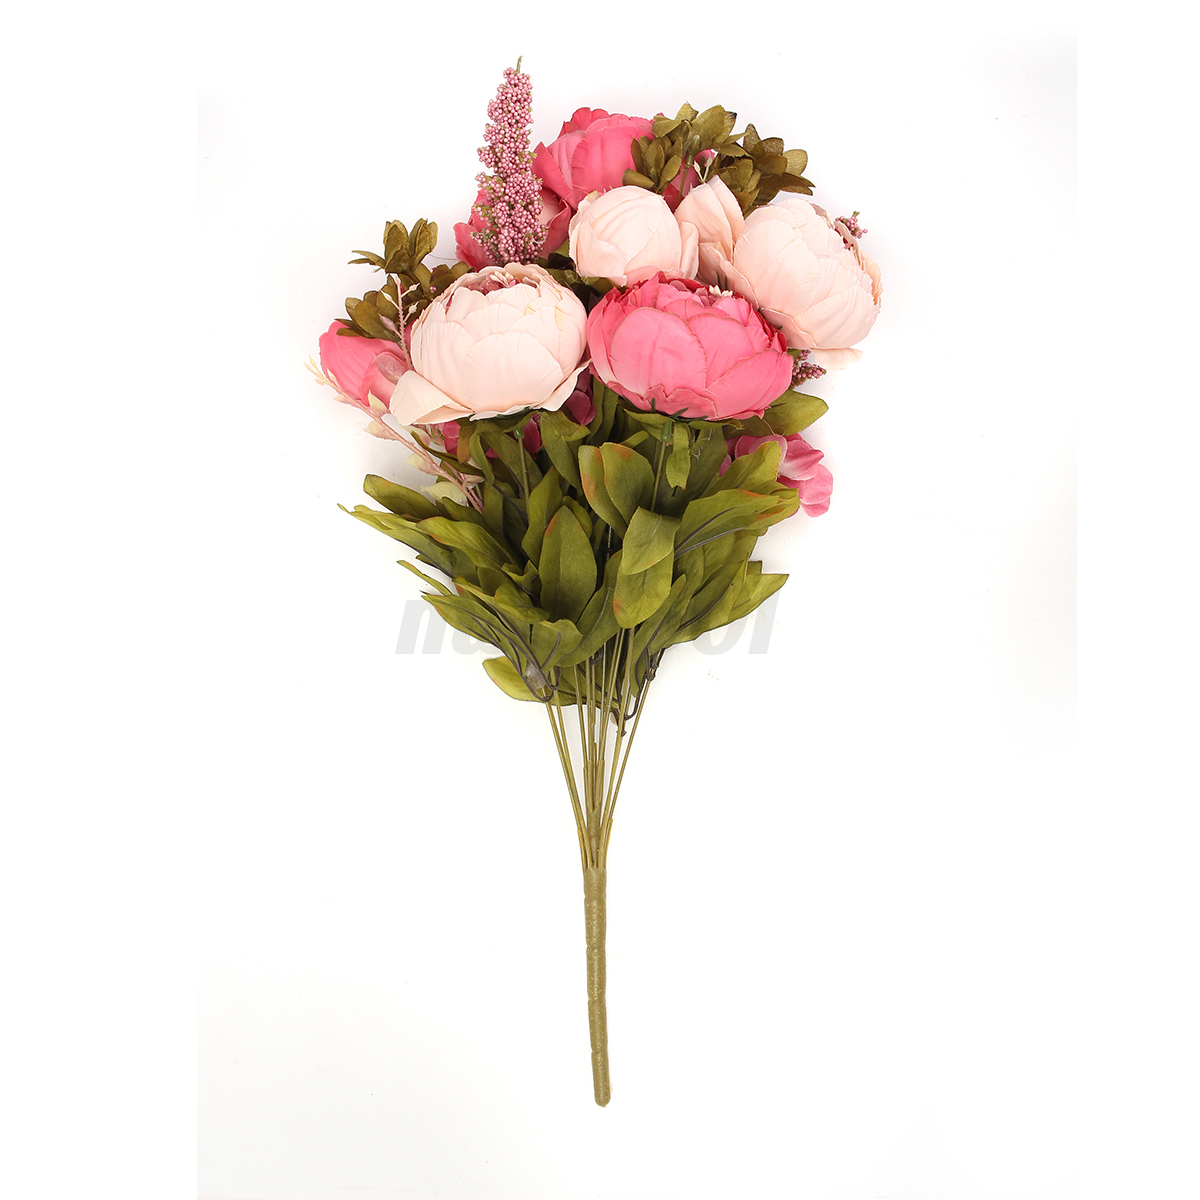 Flowers artificial peony silk fake bouquet home wedding for Artificial flower for wedding decoration